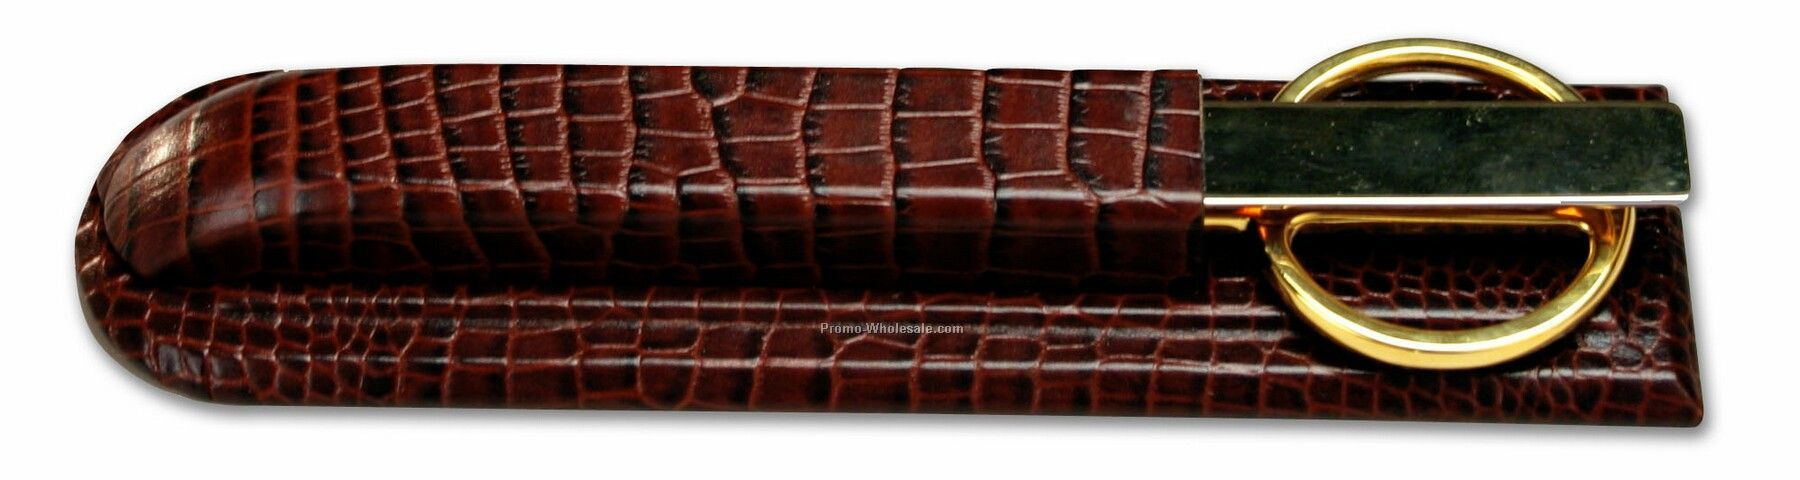 Crocodile Embossed Leather Library Set - Brown